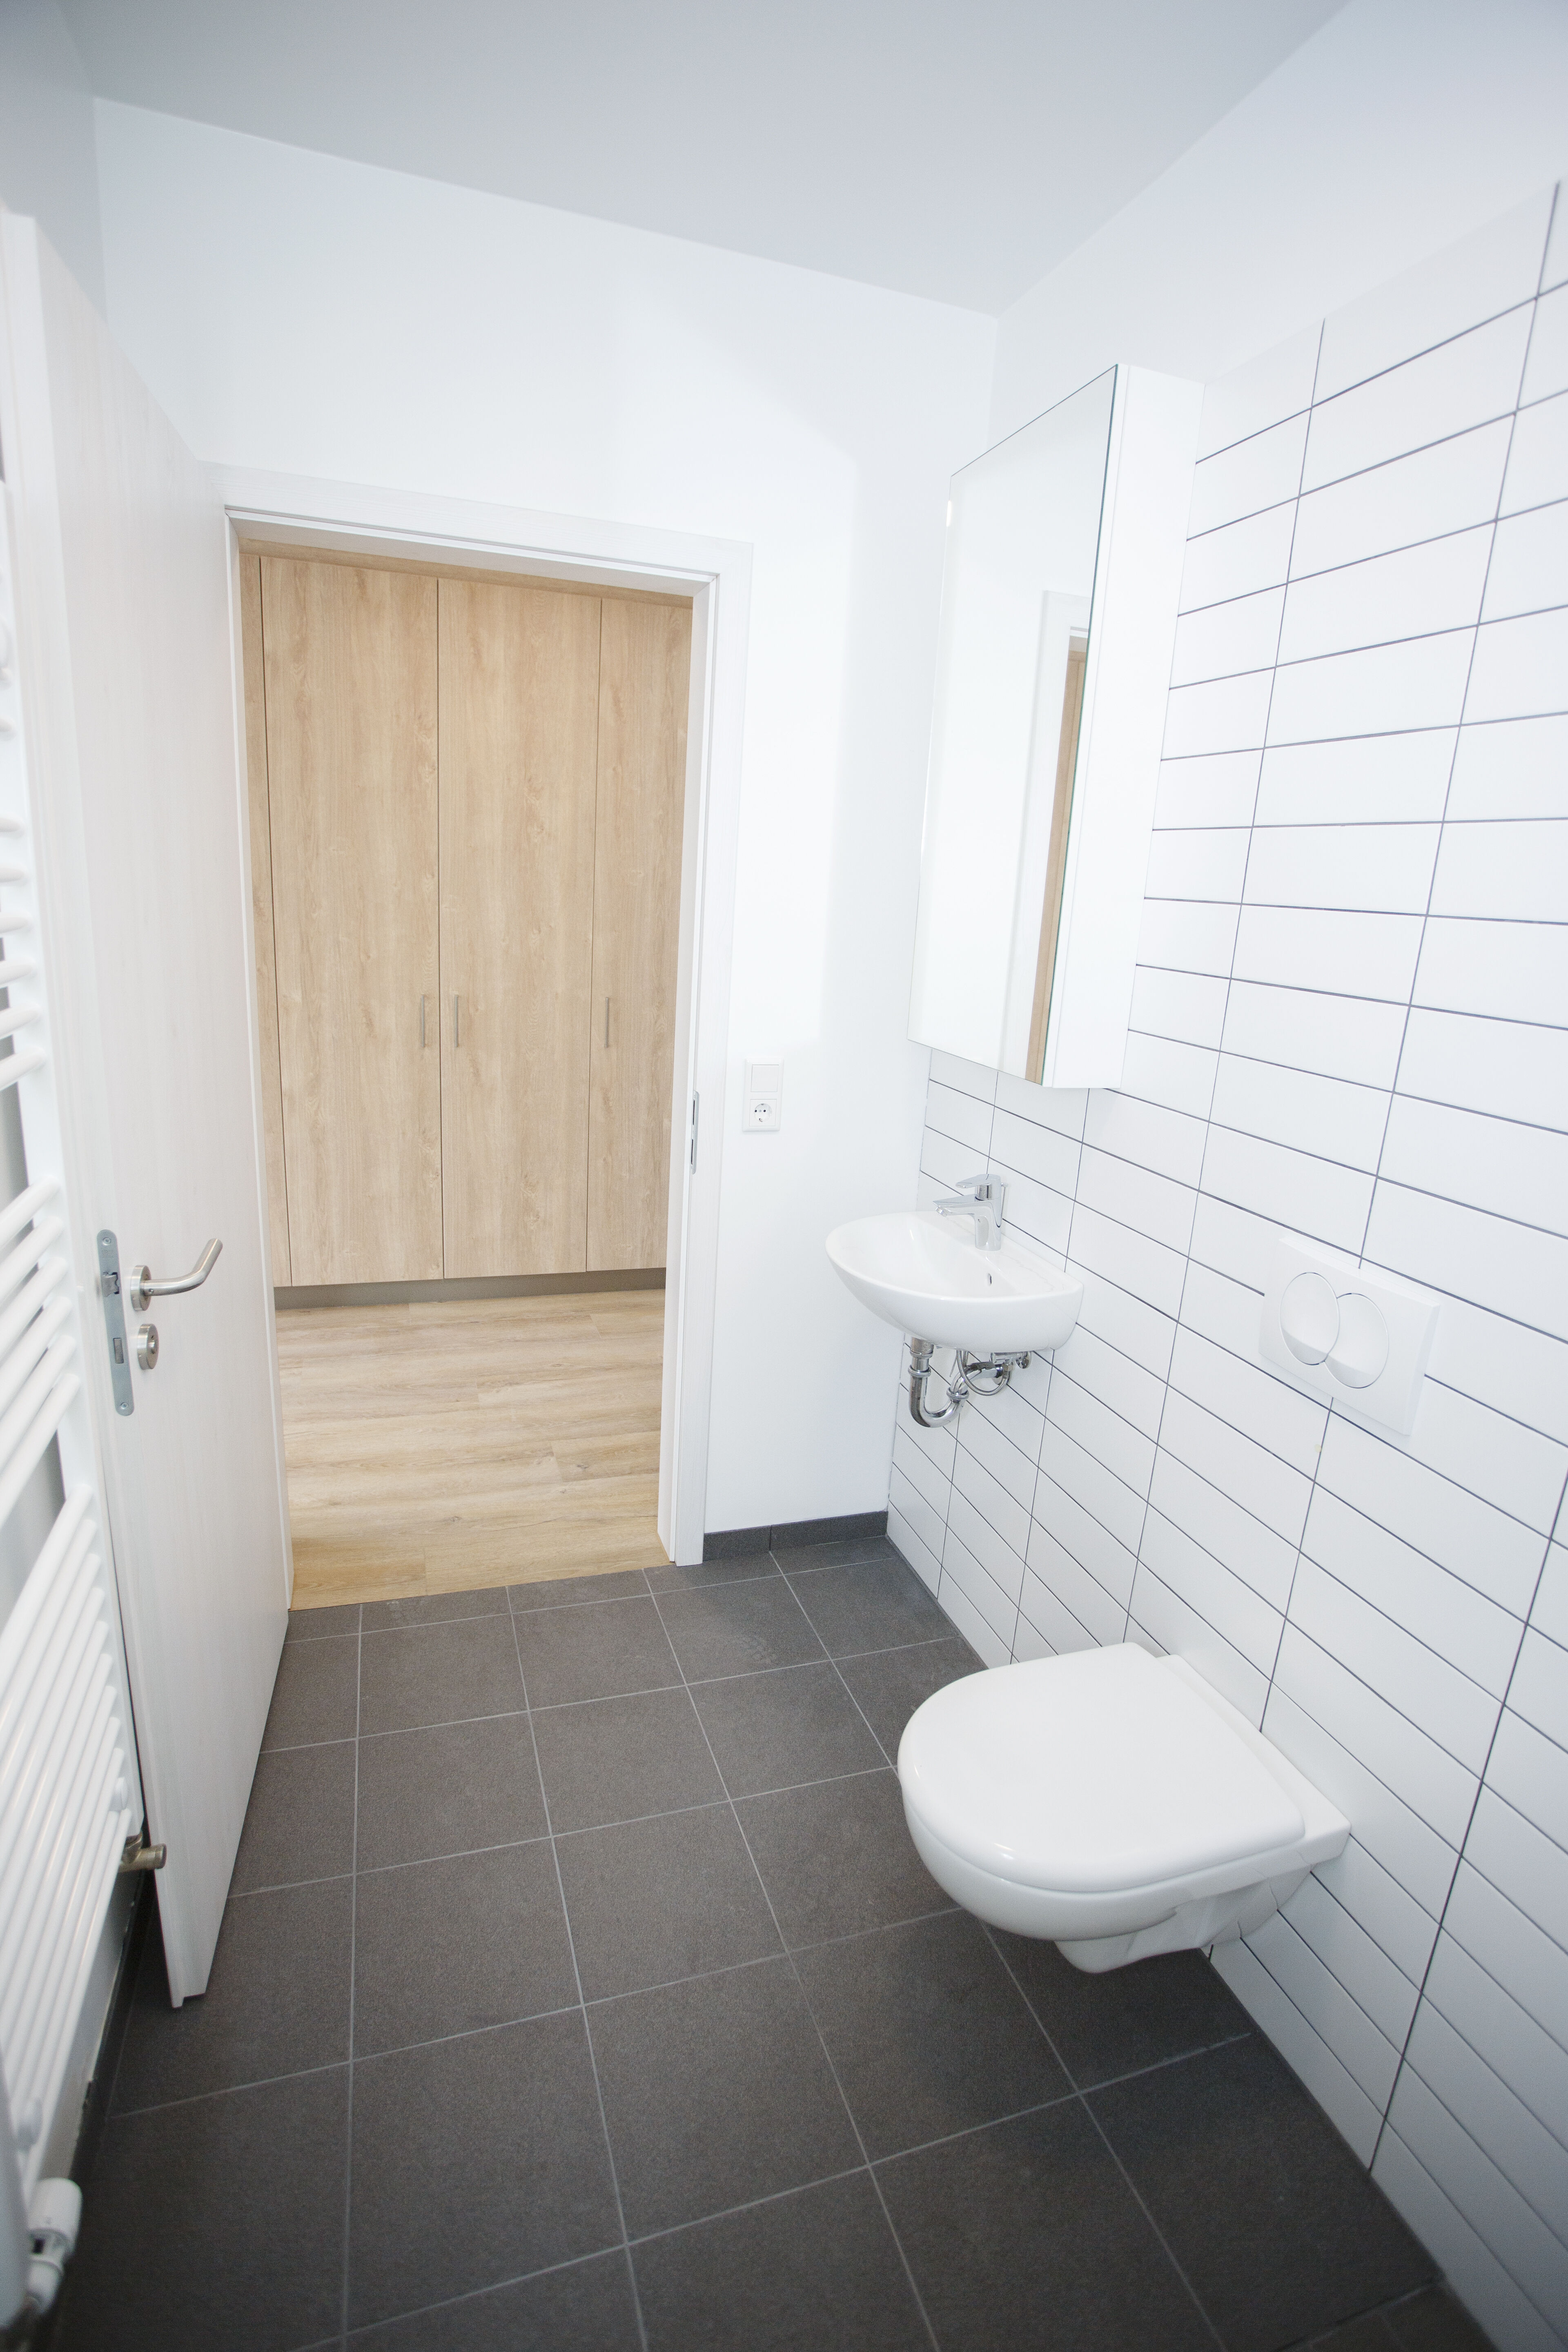 Private bathroom at Reykjavik University Student Housing